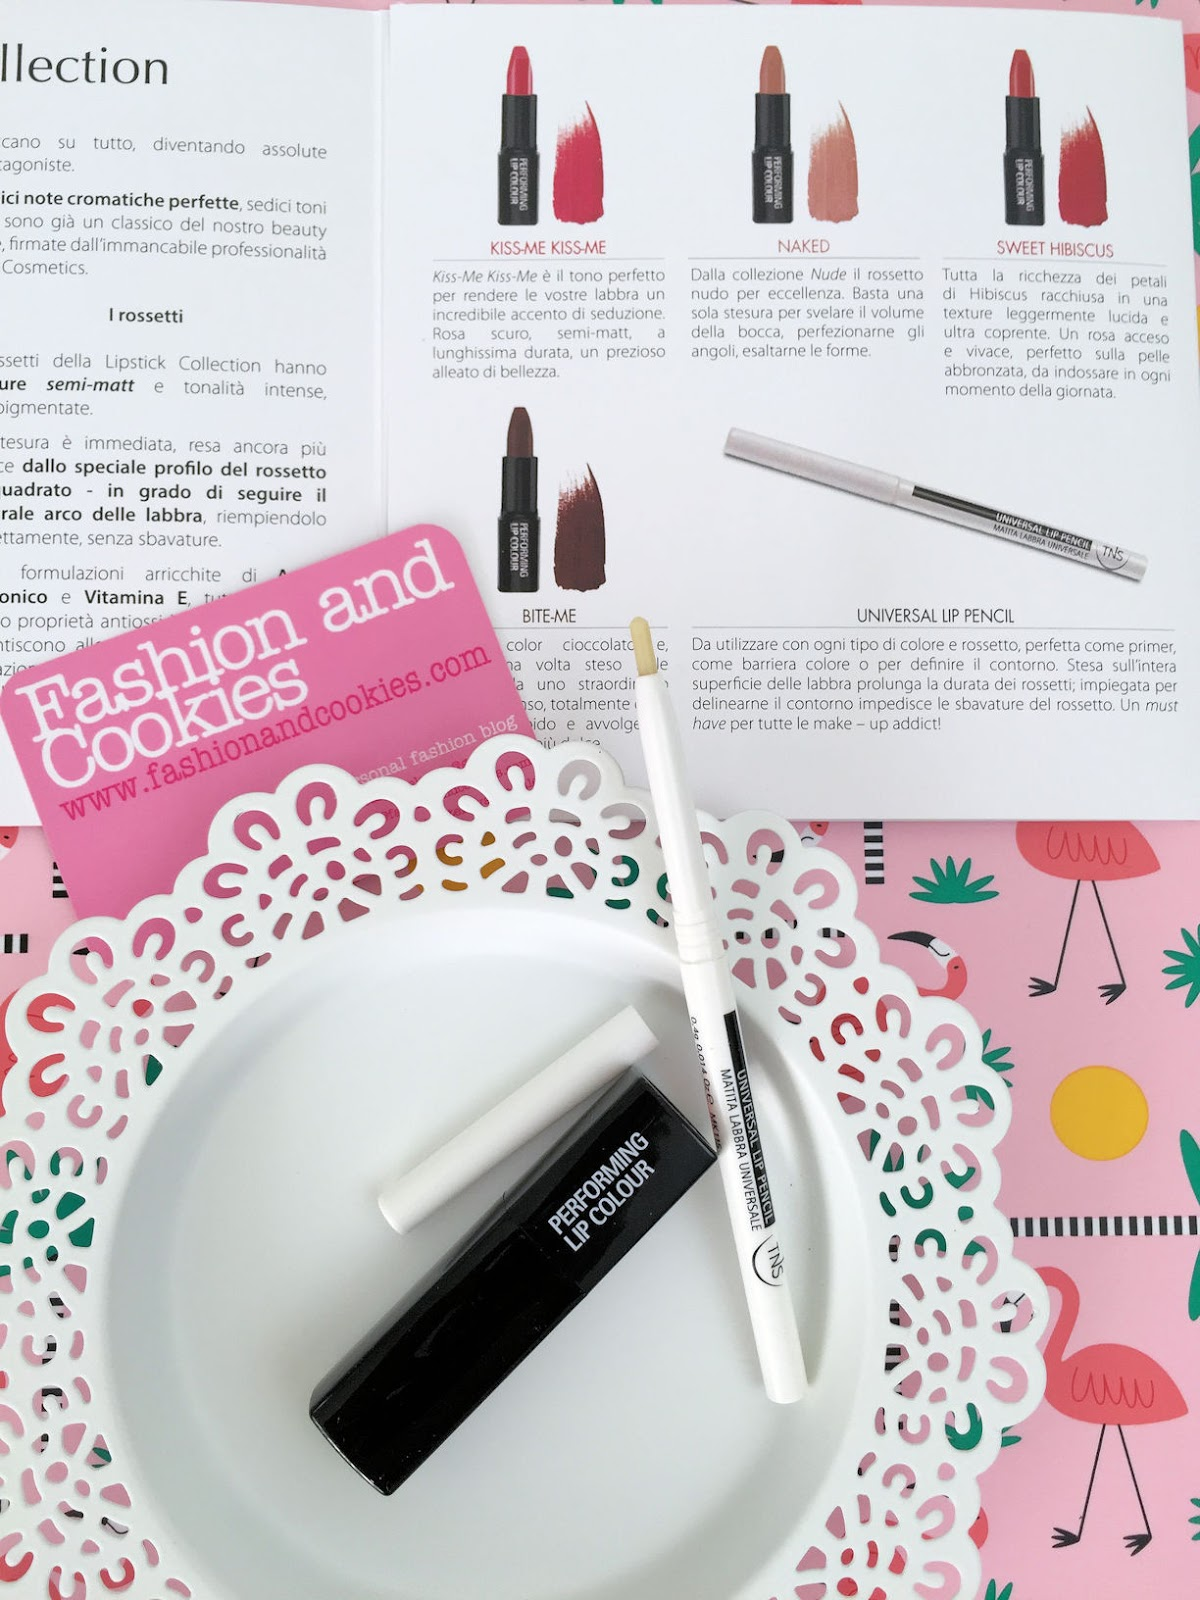 Universal Lip Pencil review on Fashion and Cookies beauty blog, beauty blogger